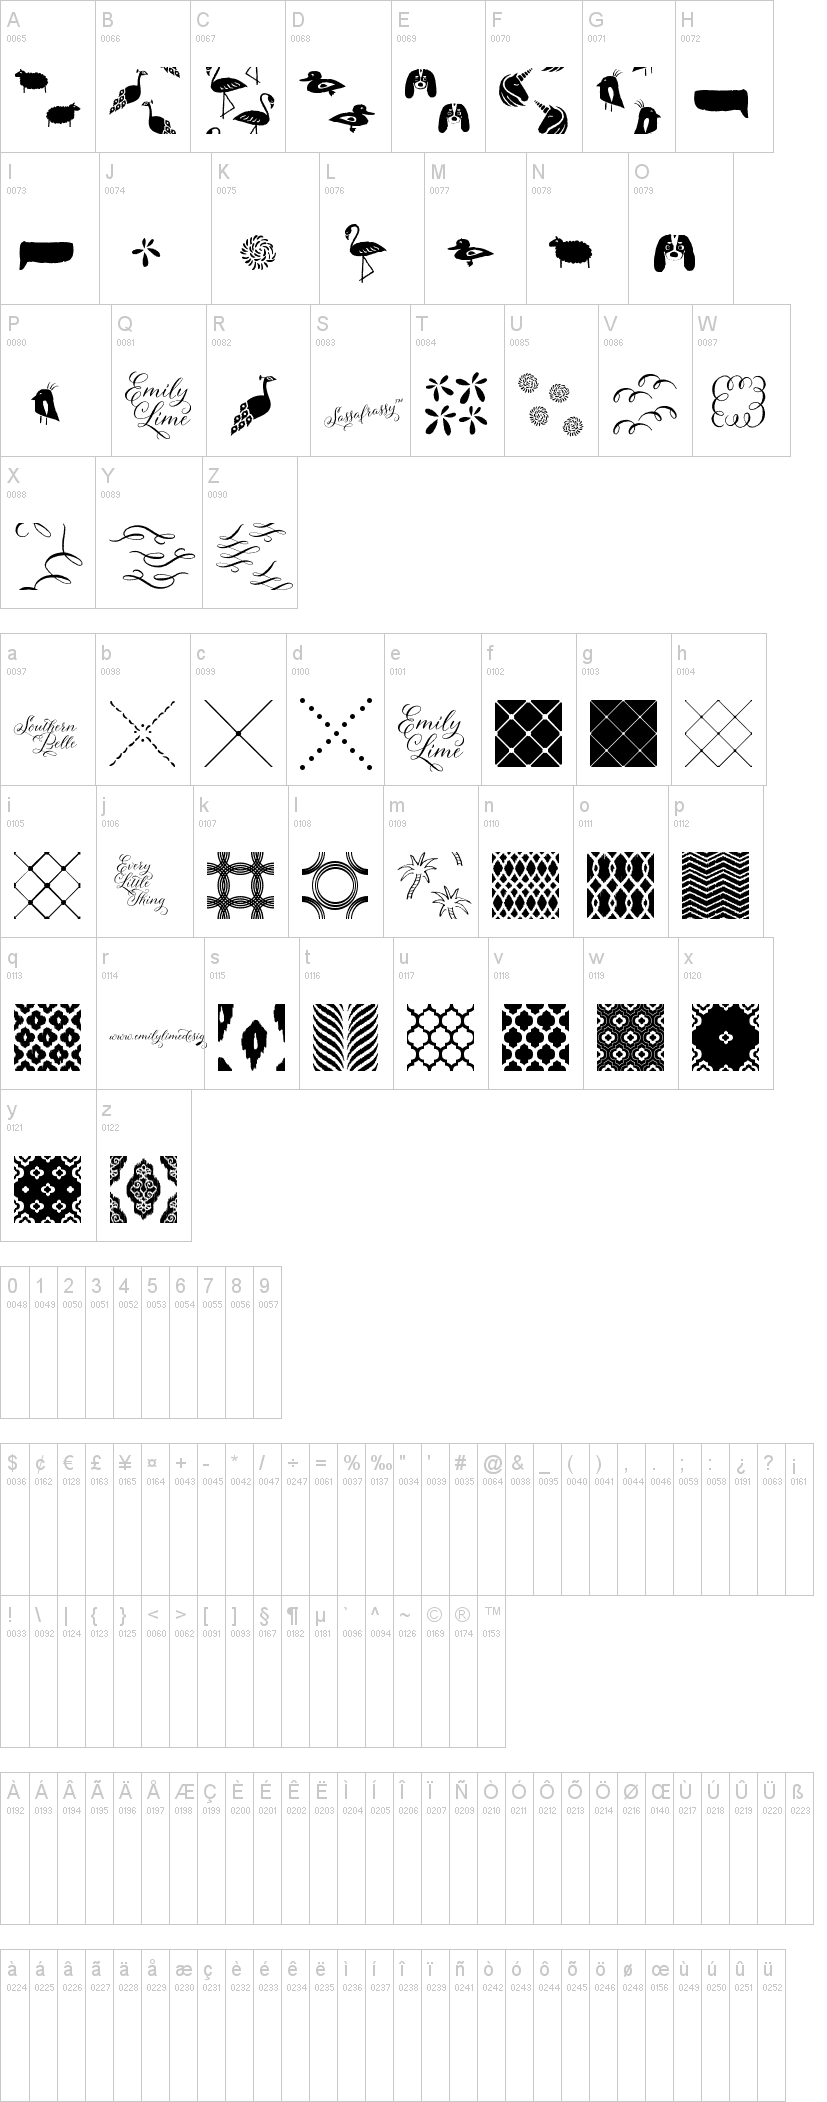 Sassafrassy Patterns